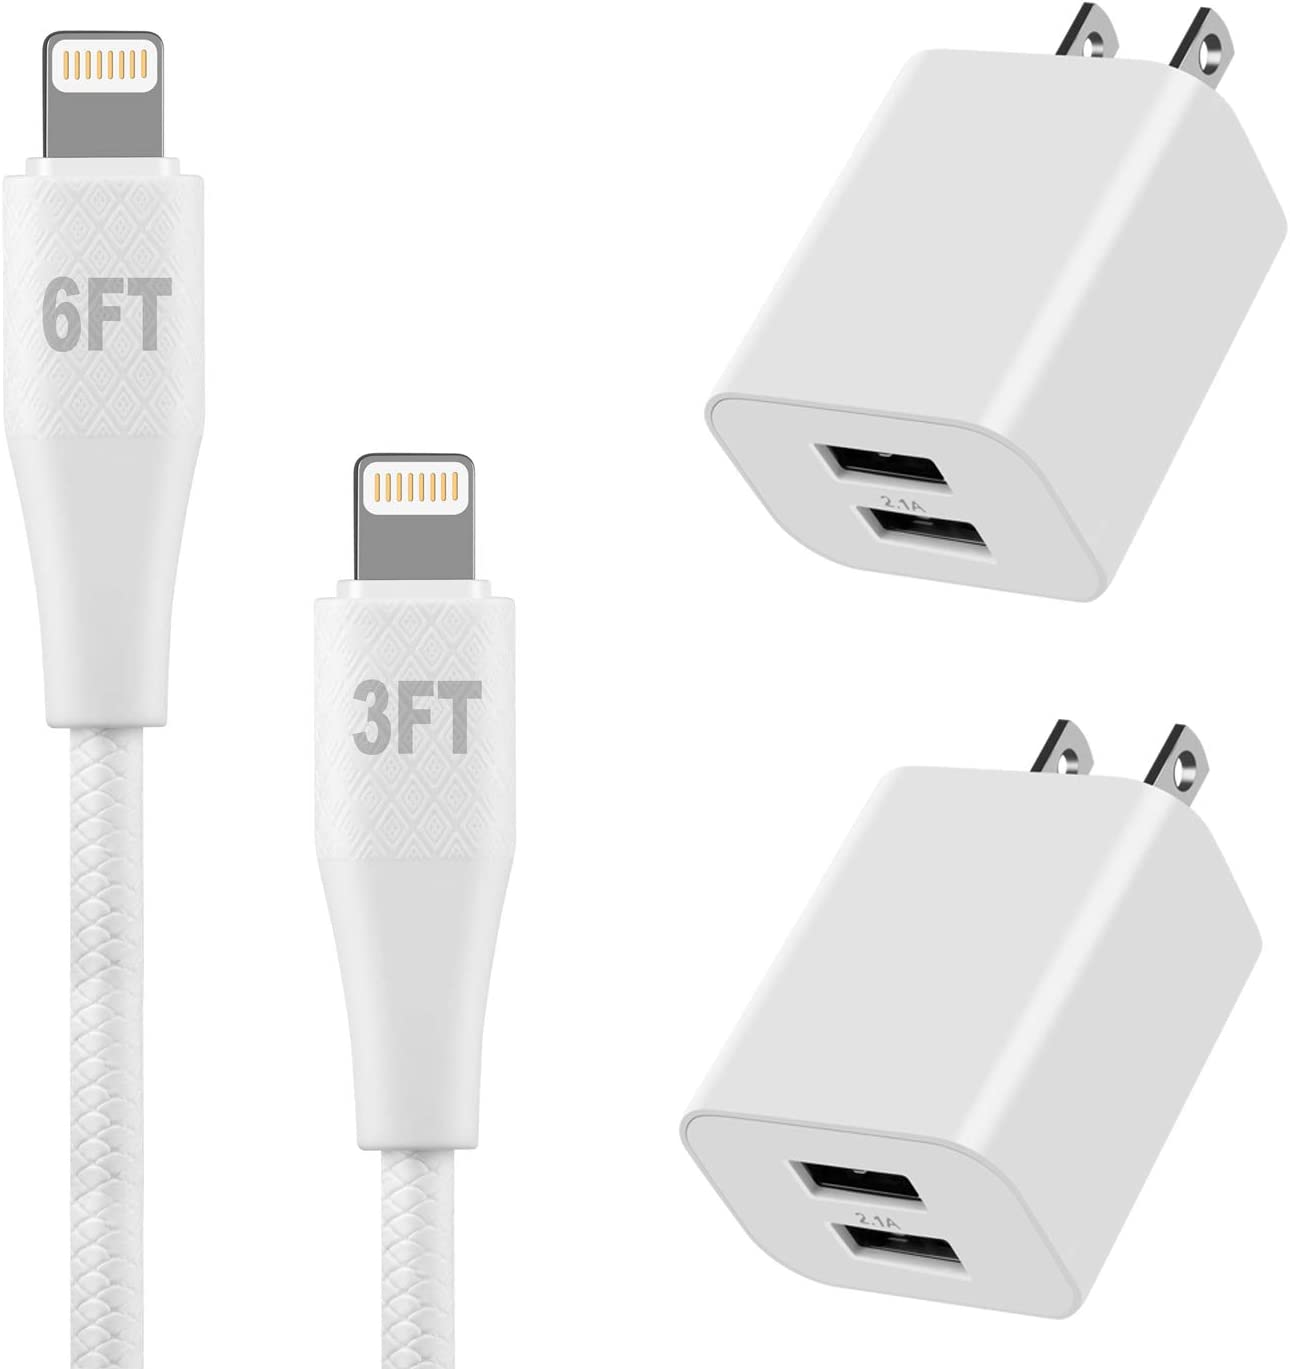 MFi Certified iPhone Charger Lightning Charging Cable 6FT+3FT with USB Wall Charger Plug 2 Pack 5V 2.1Amp Cube Dual Port Travel Power Adapter for iPhone Xs/XS Max/XR/X/8/8 Plus/7/6S/6S Plus/6/SE/iPad